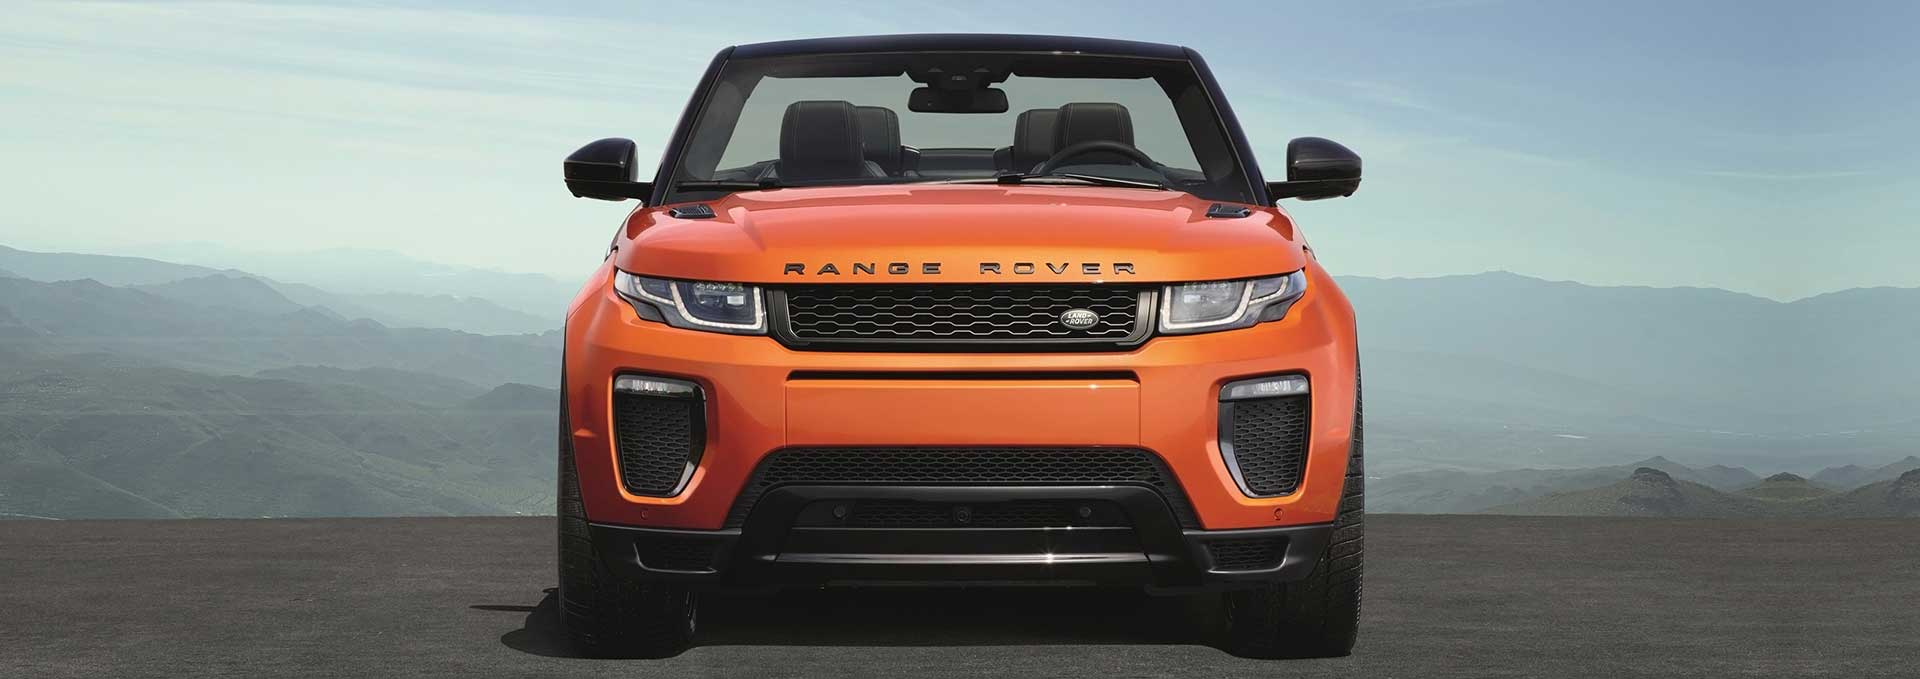 Gallery   Ritter Land Rover